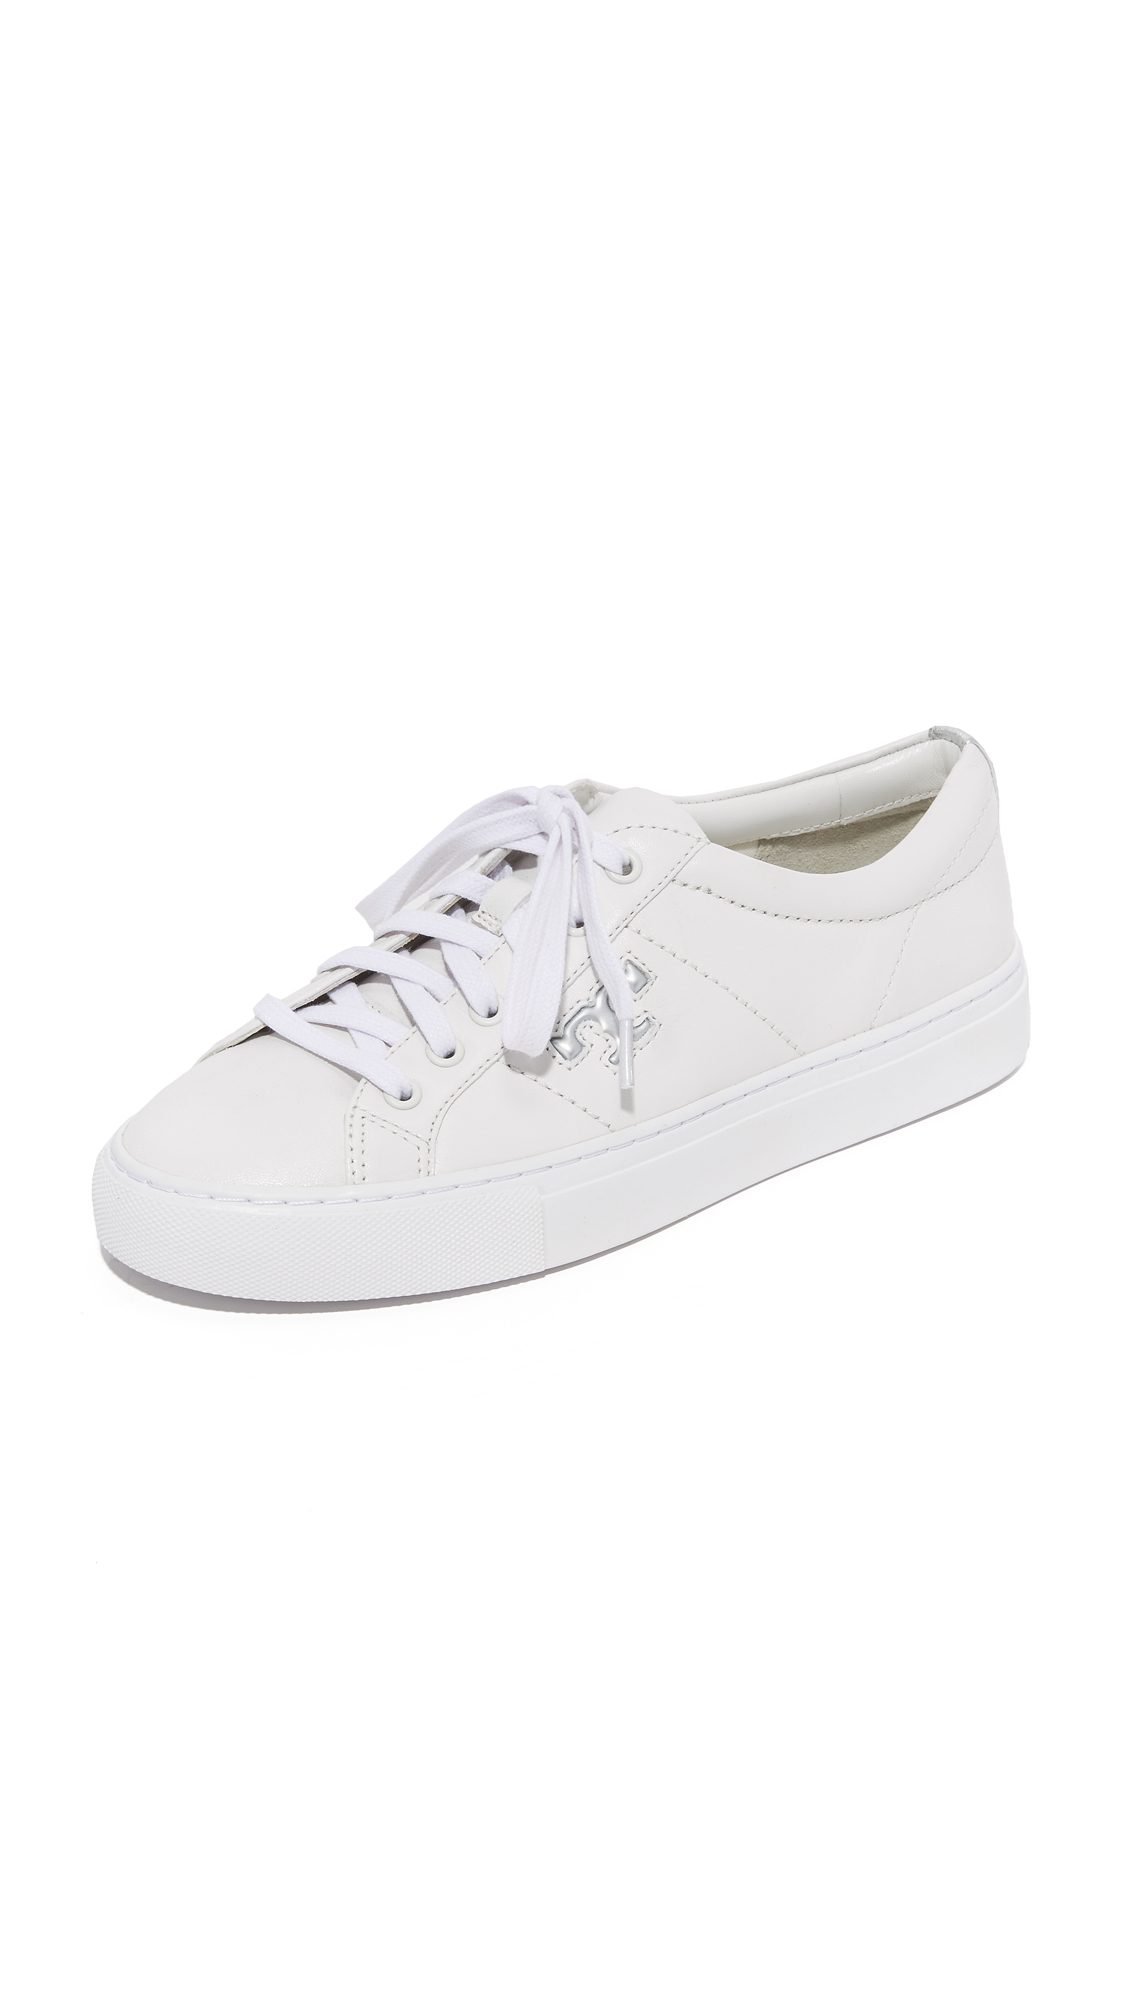 e83996518a1 Tory Burch Chace Lace Up Sneakers